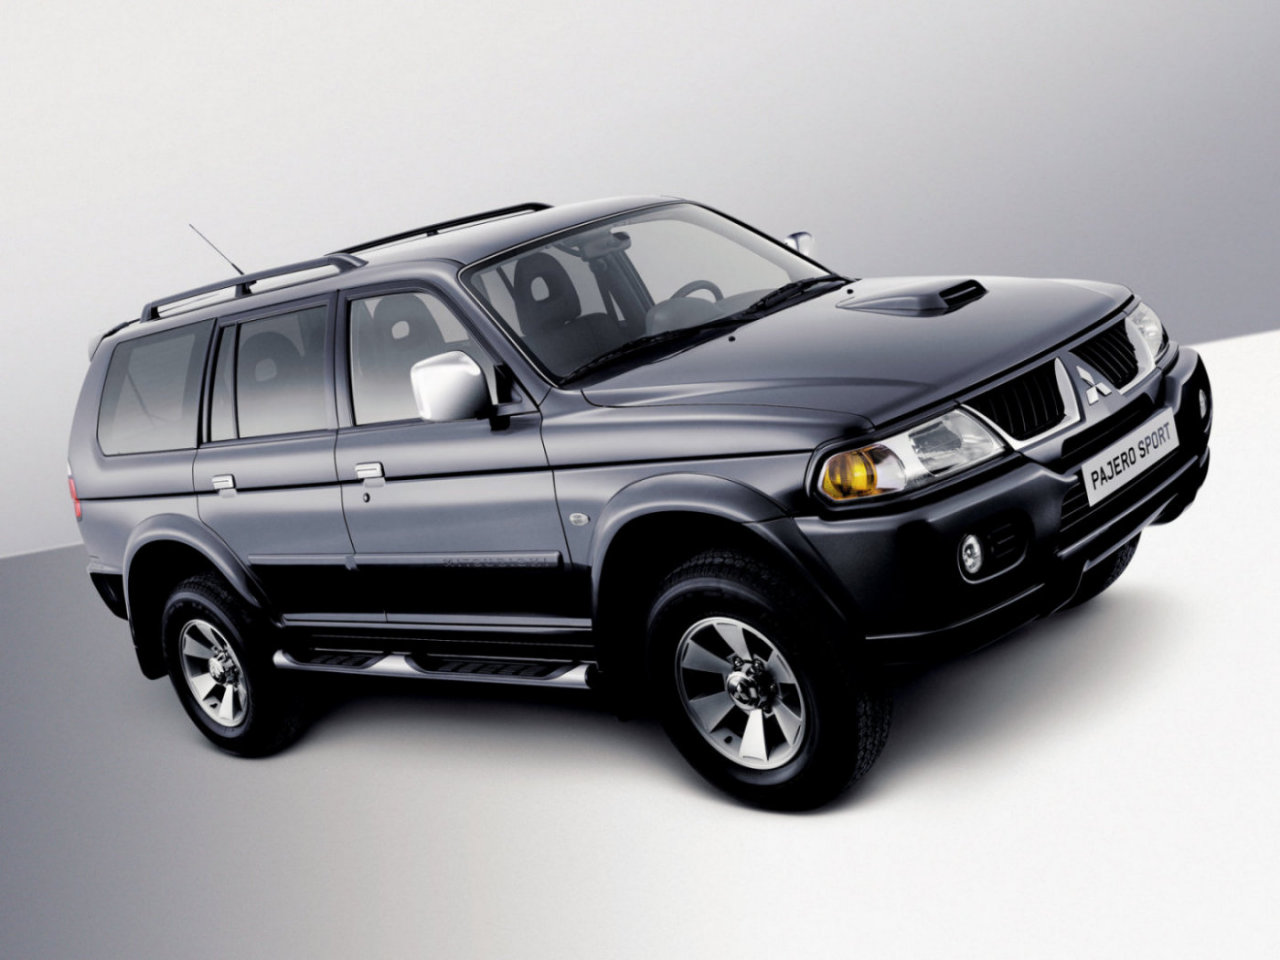 3dtuning of mitsubishi pajero suv 2005 unique on line car configurator for more. Black Bedroom Furniture Sets. Home Design Ideas